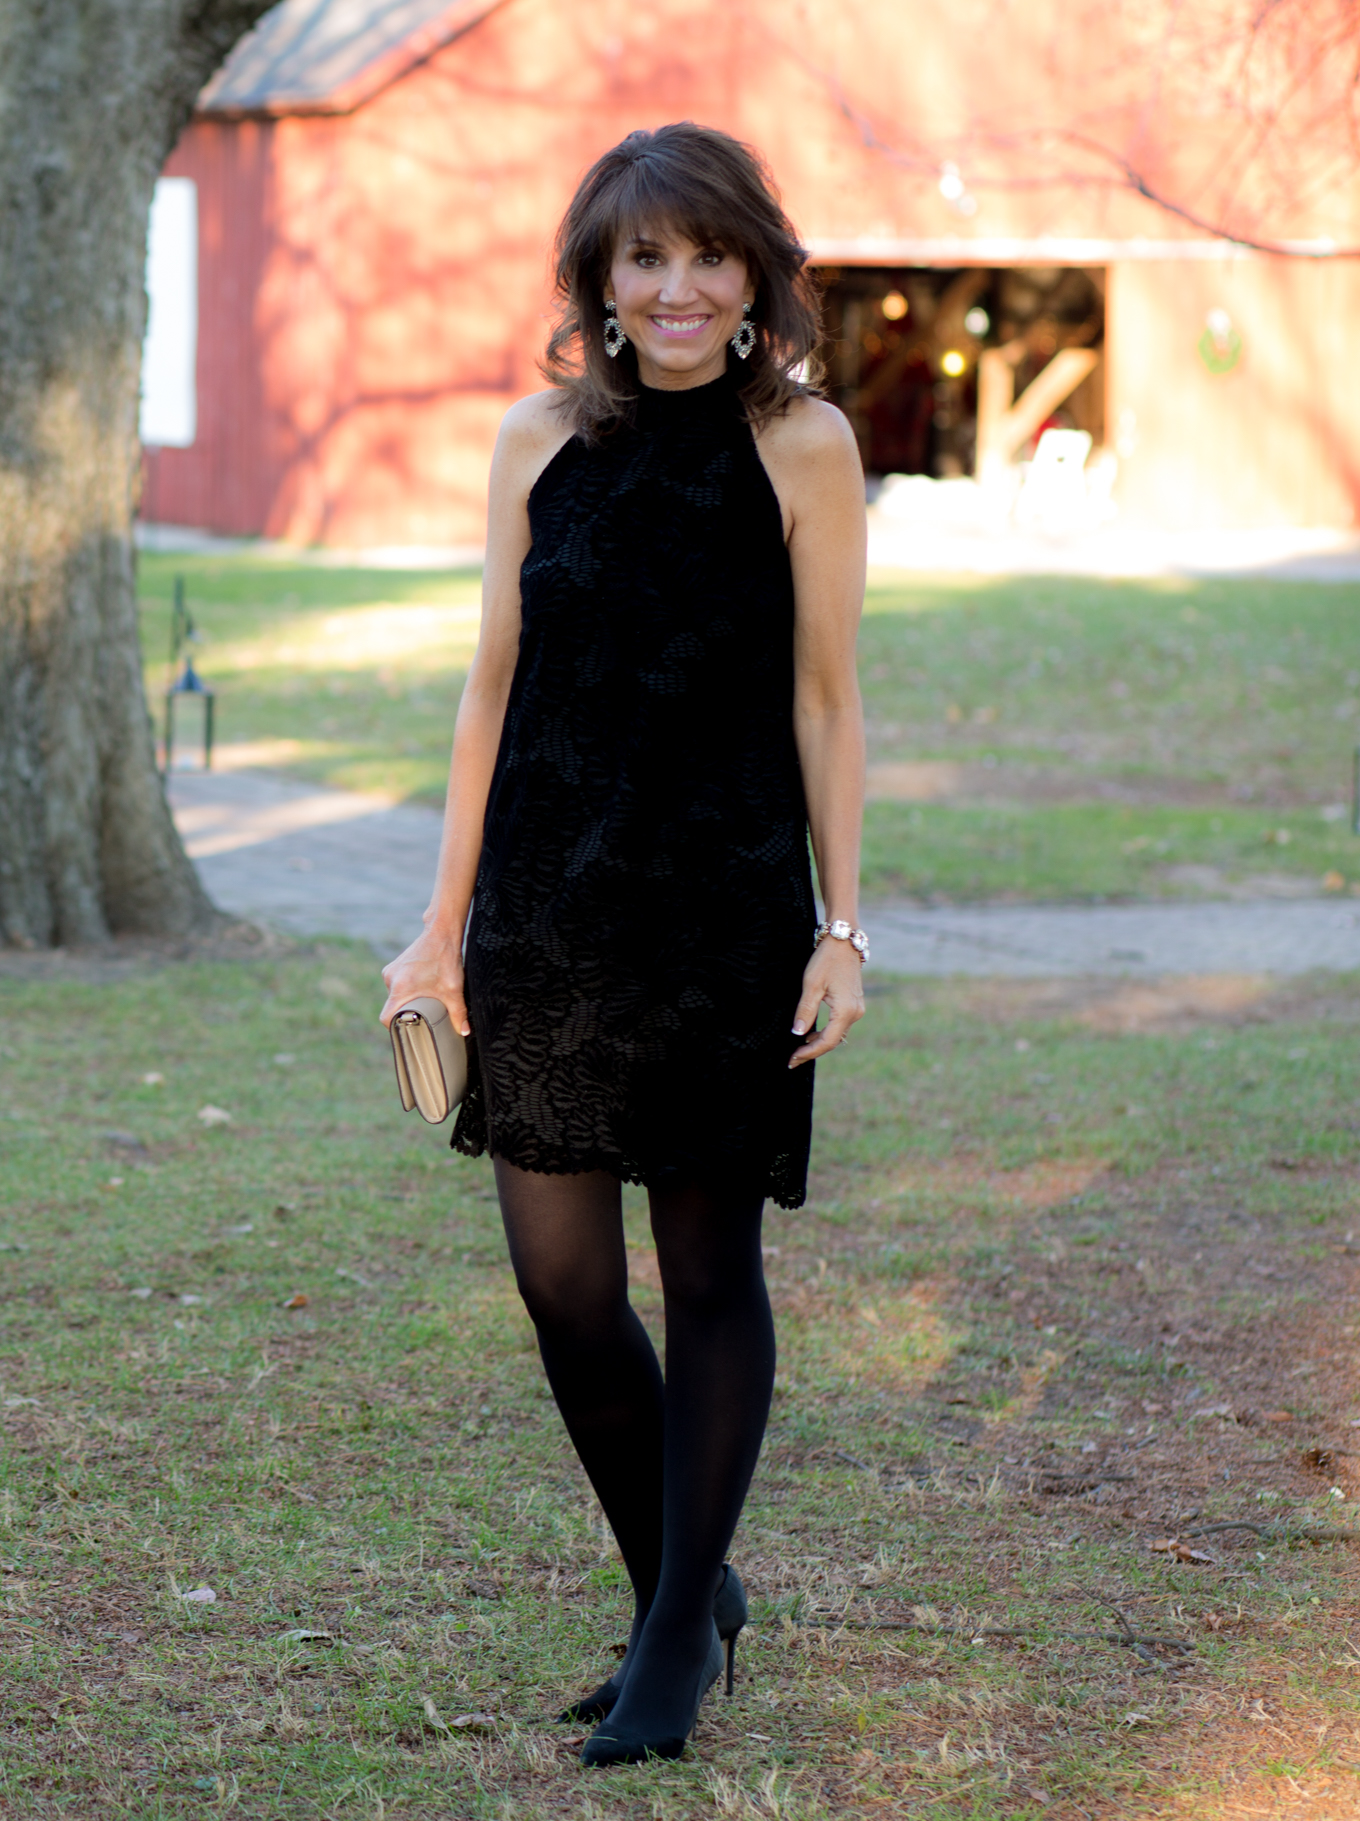 25 Days of Winter Fashion: Black Lace Dress for New Year's Eve